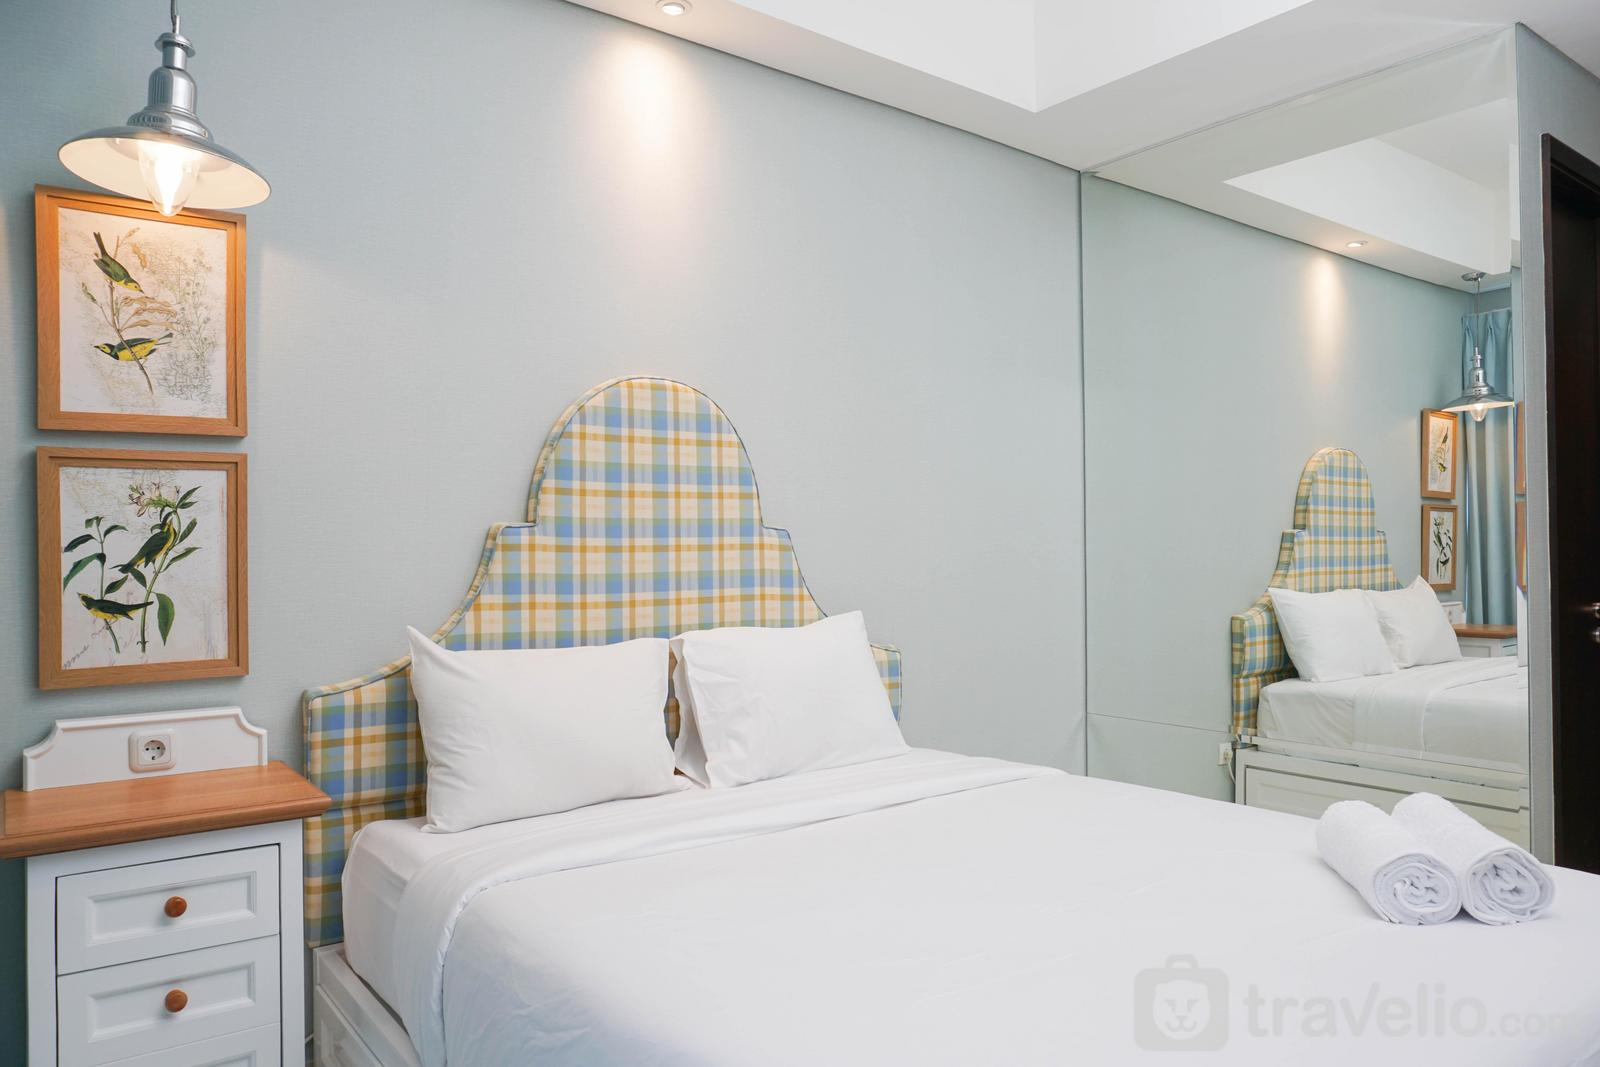 Apartemen Puri Mansion - Cozy Studio at Puri Mansion Apartment By Travelio